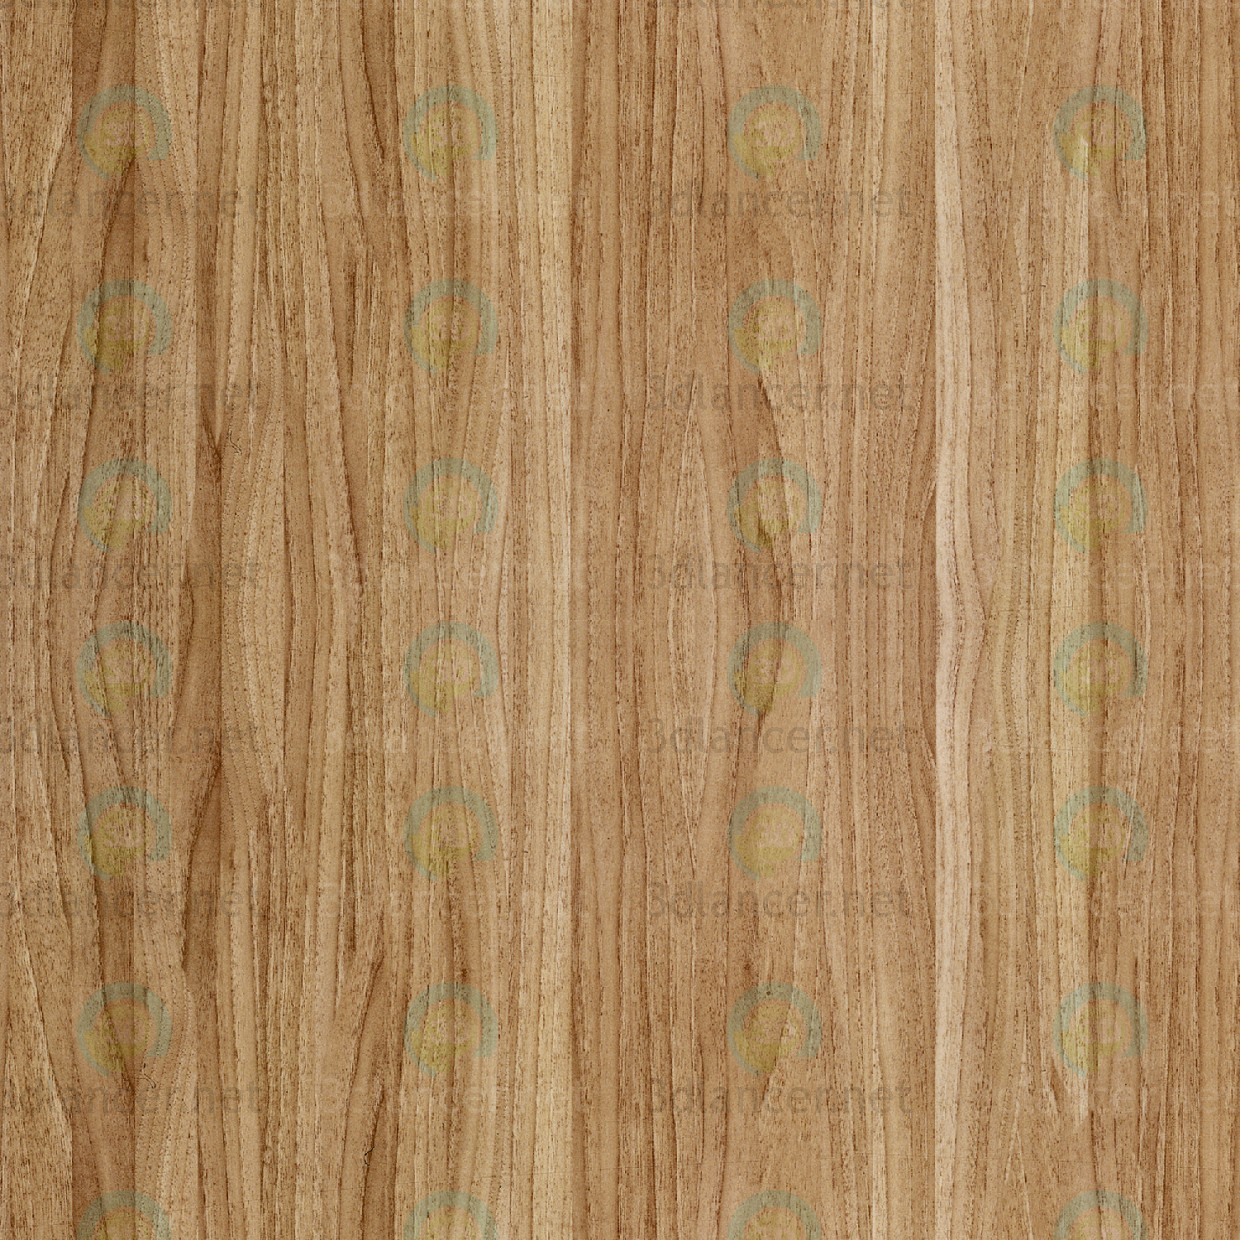 Download Texture High Quality Wood Textures 35 Items For